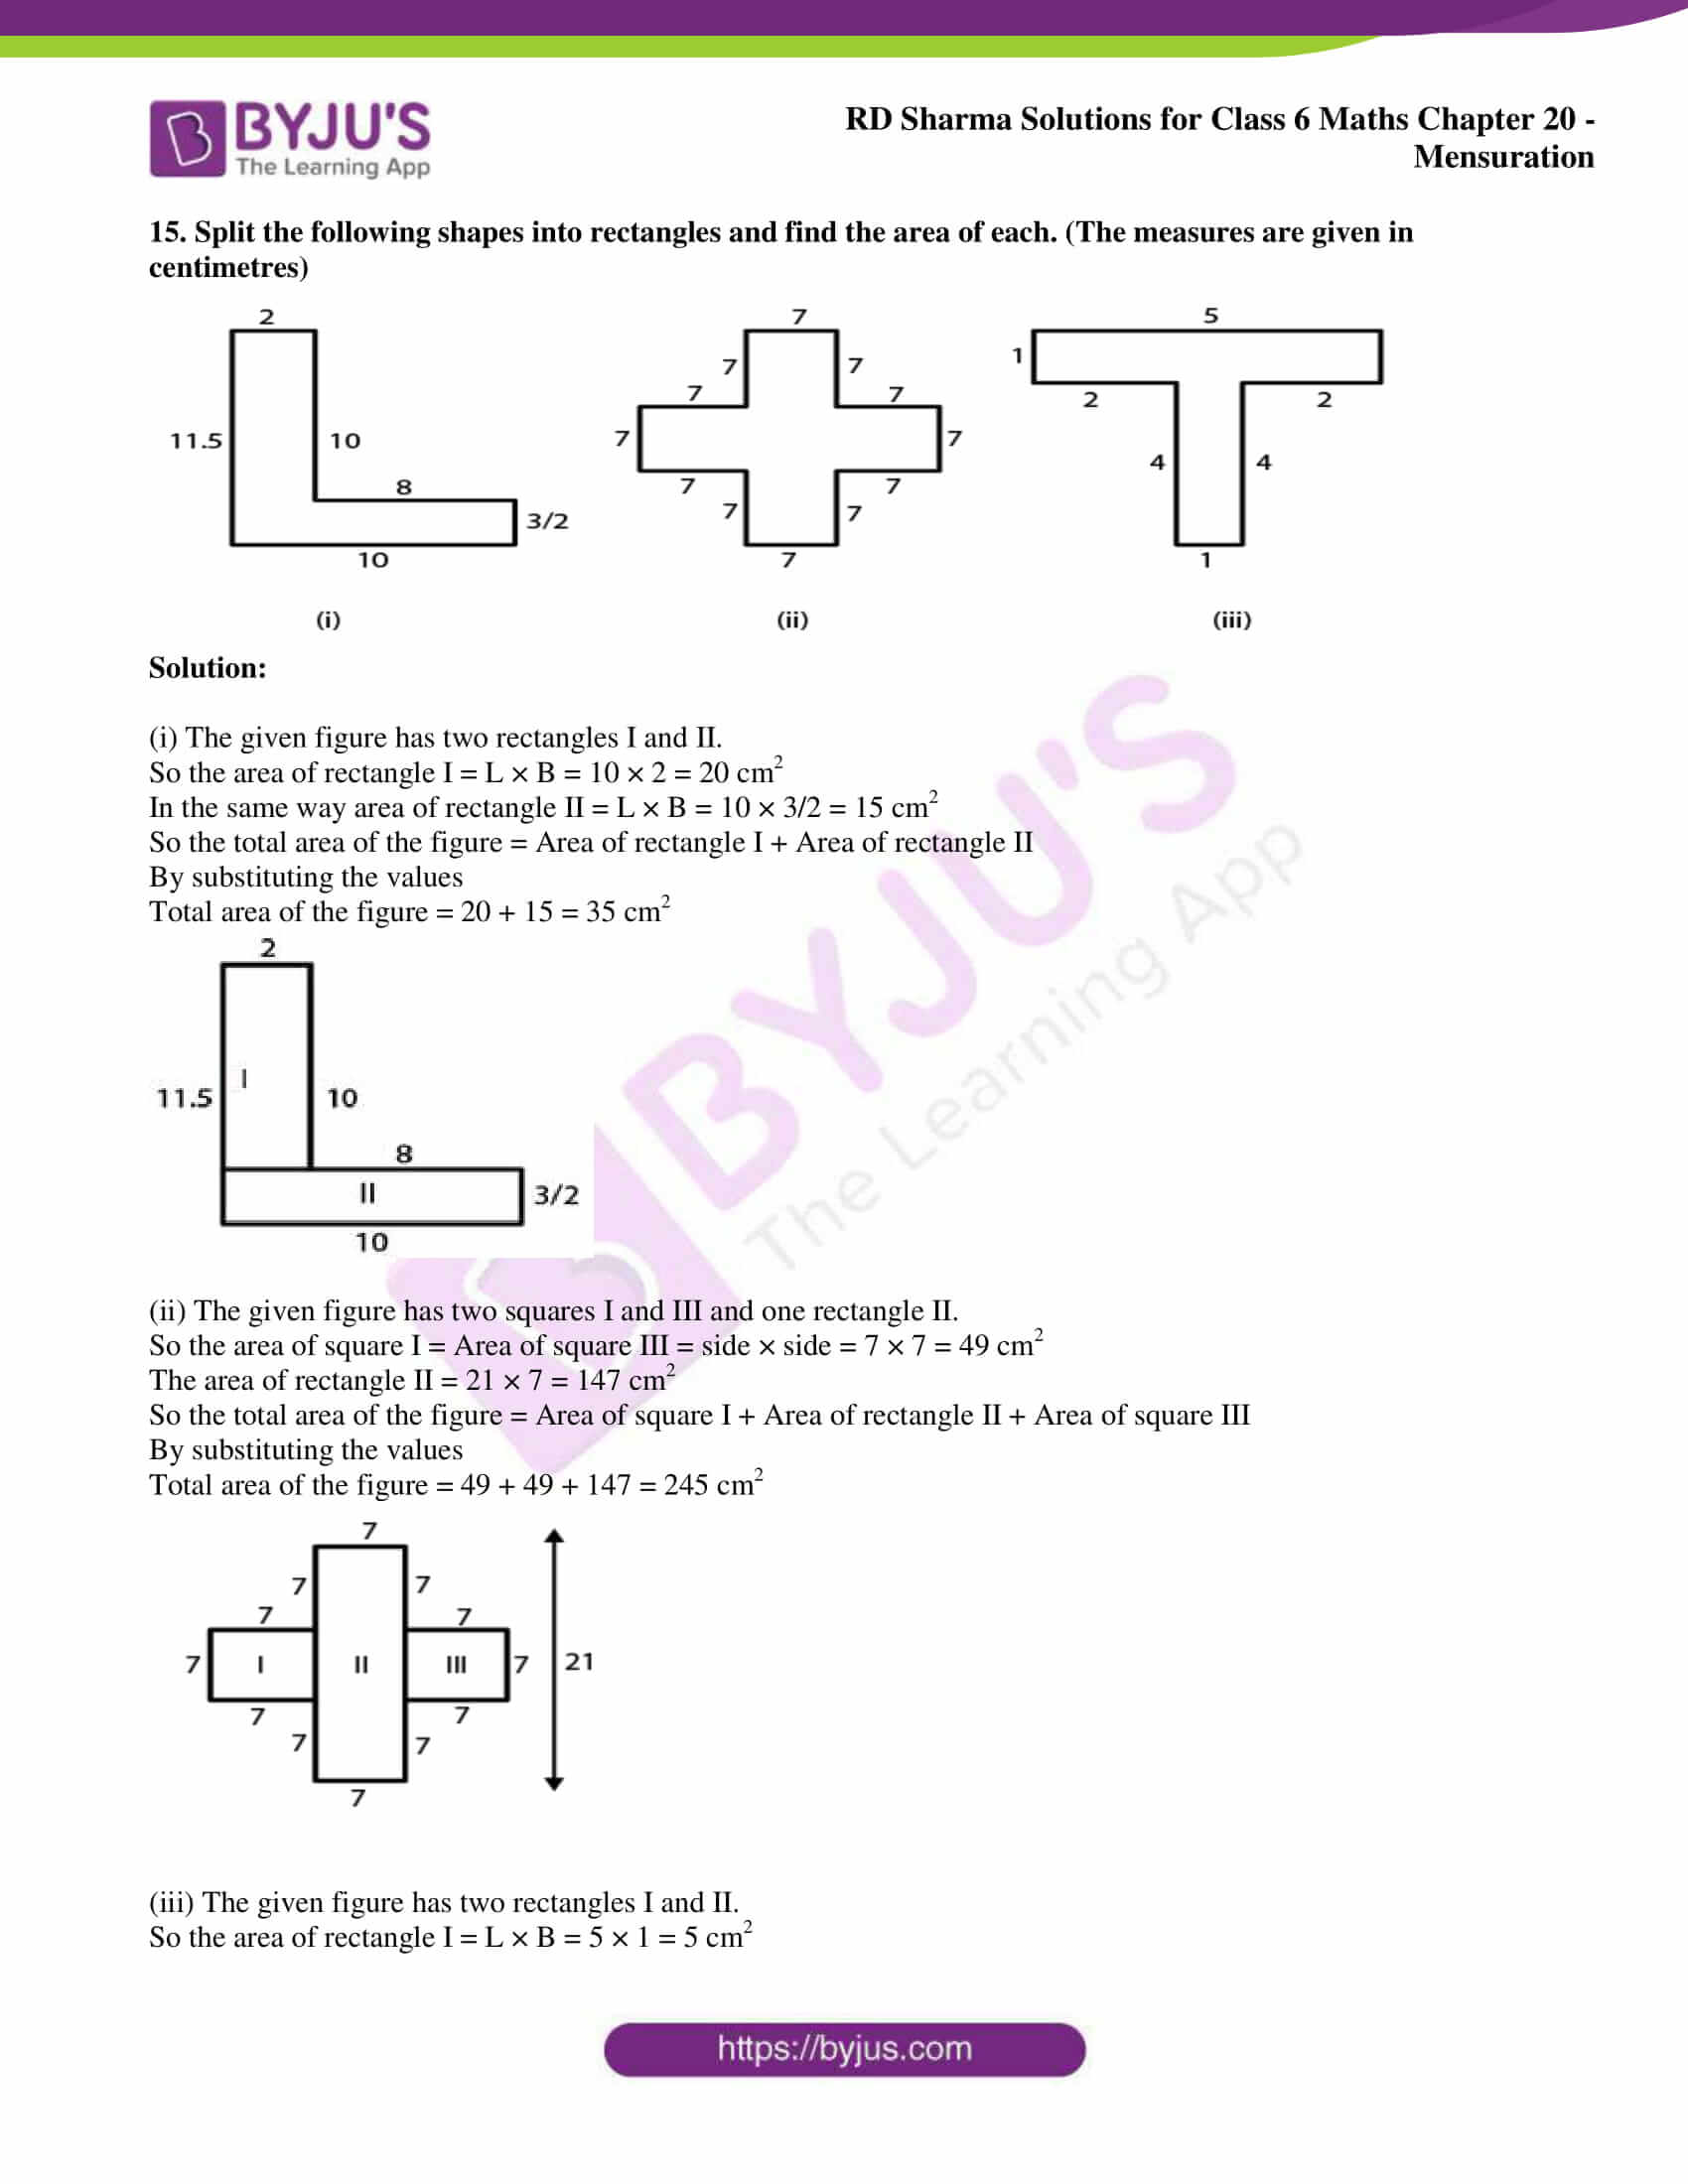 rd sharma solutions nov2020 class 6 maths chapter 20 exercise 4 7